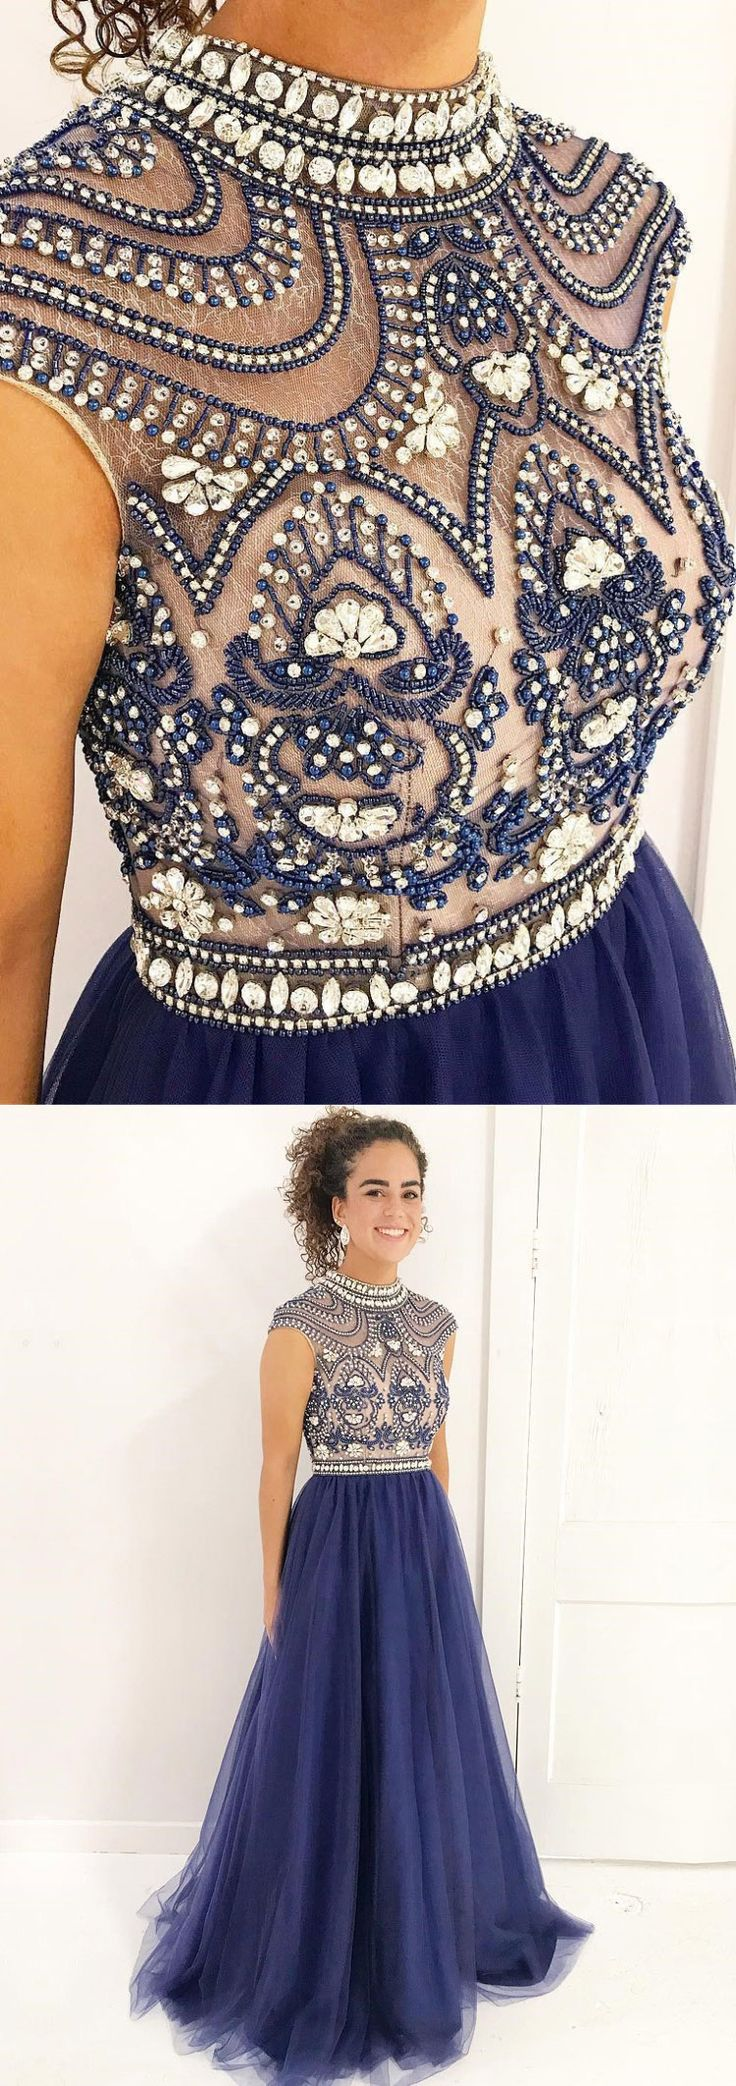 Shine Beaded Prom Dresses with High Neck,Crystal Long Pageant Dresses,Long formal Party Dresses,#prom #sheergirl